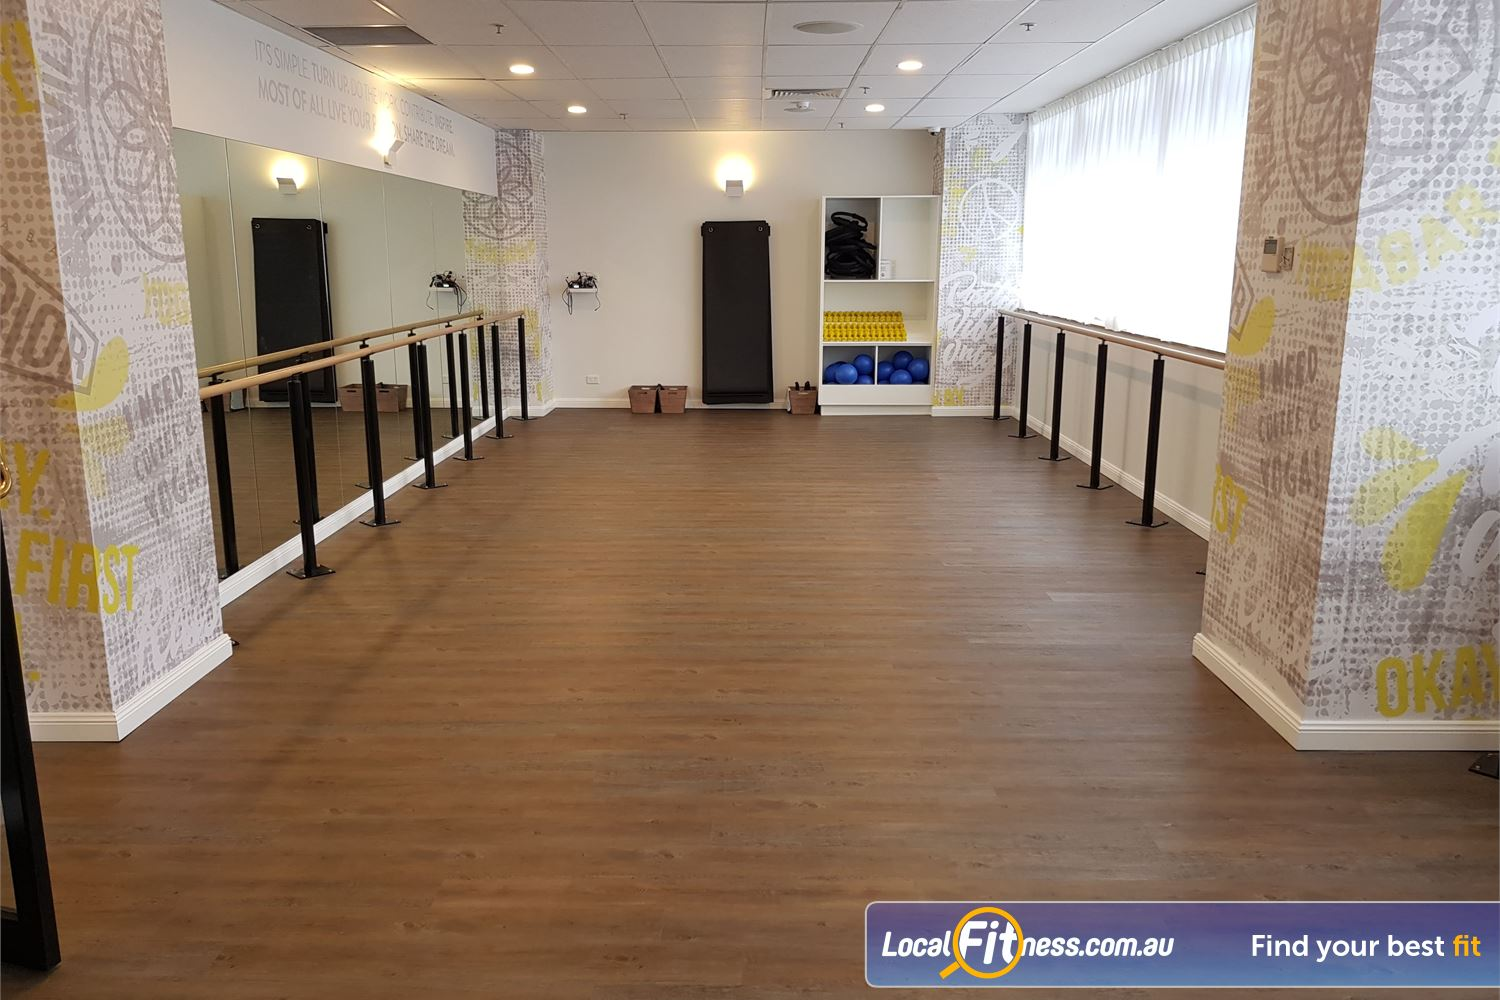 Fit n Fast Near Enfield The relaxing NSW Burwood Yoga studio.